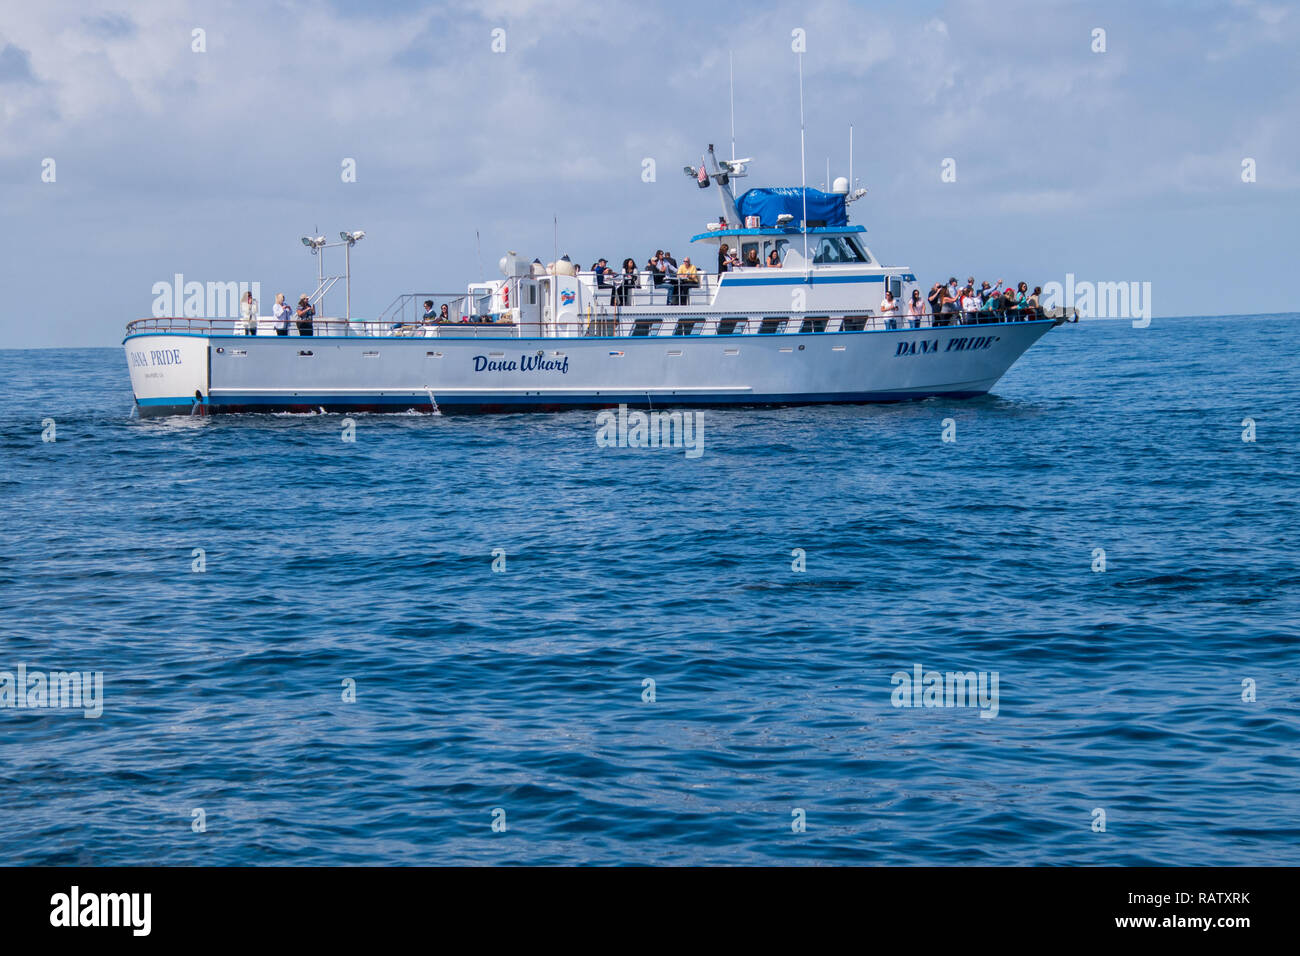 Dana Point, California - October 10, 2018: This whale watching boat was seen of of the coast of California. Tourists are seen at it's bow taking pictu - Stock Image